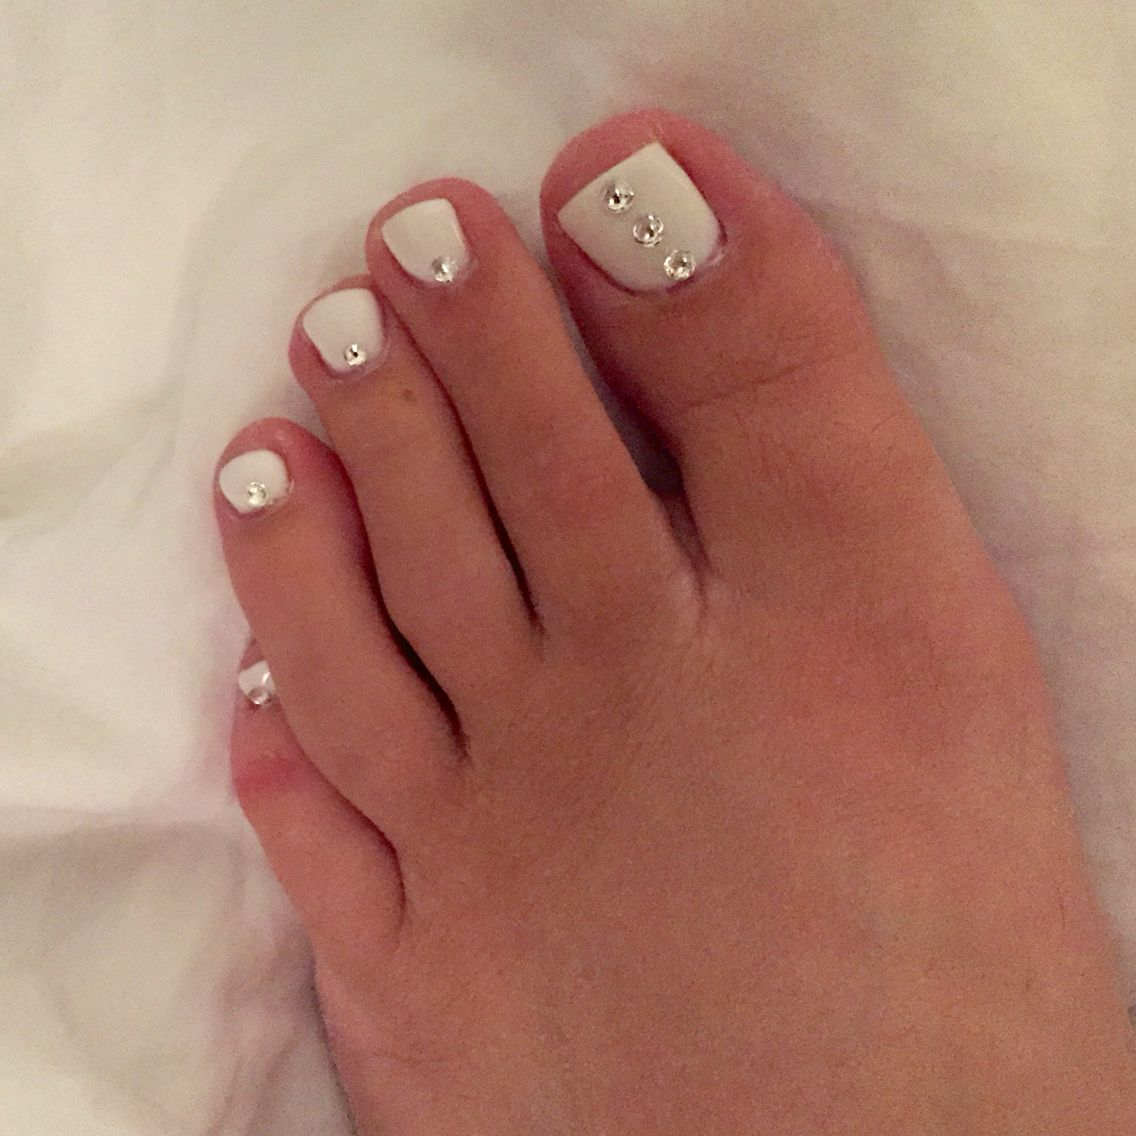 White Rhinestone Pedicure #nailart #whitepedicure